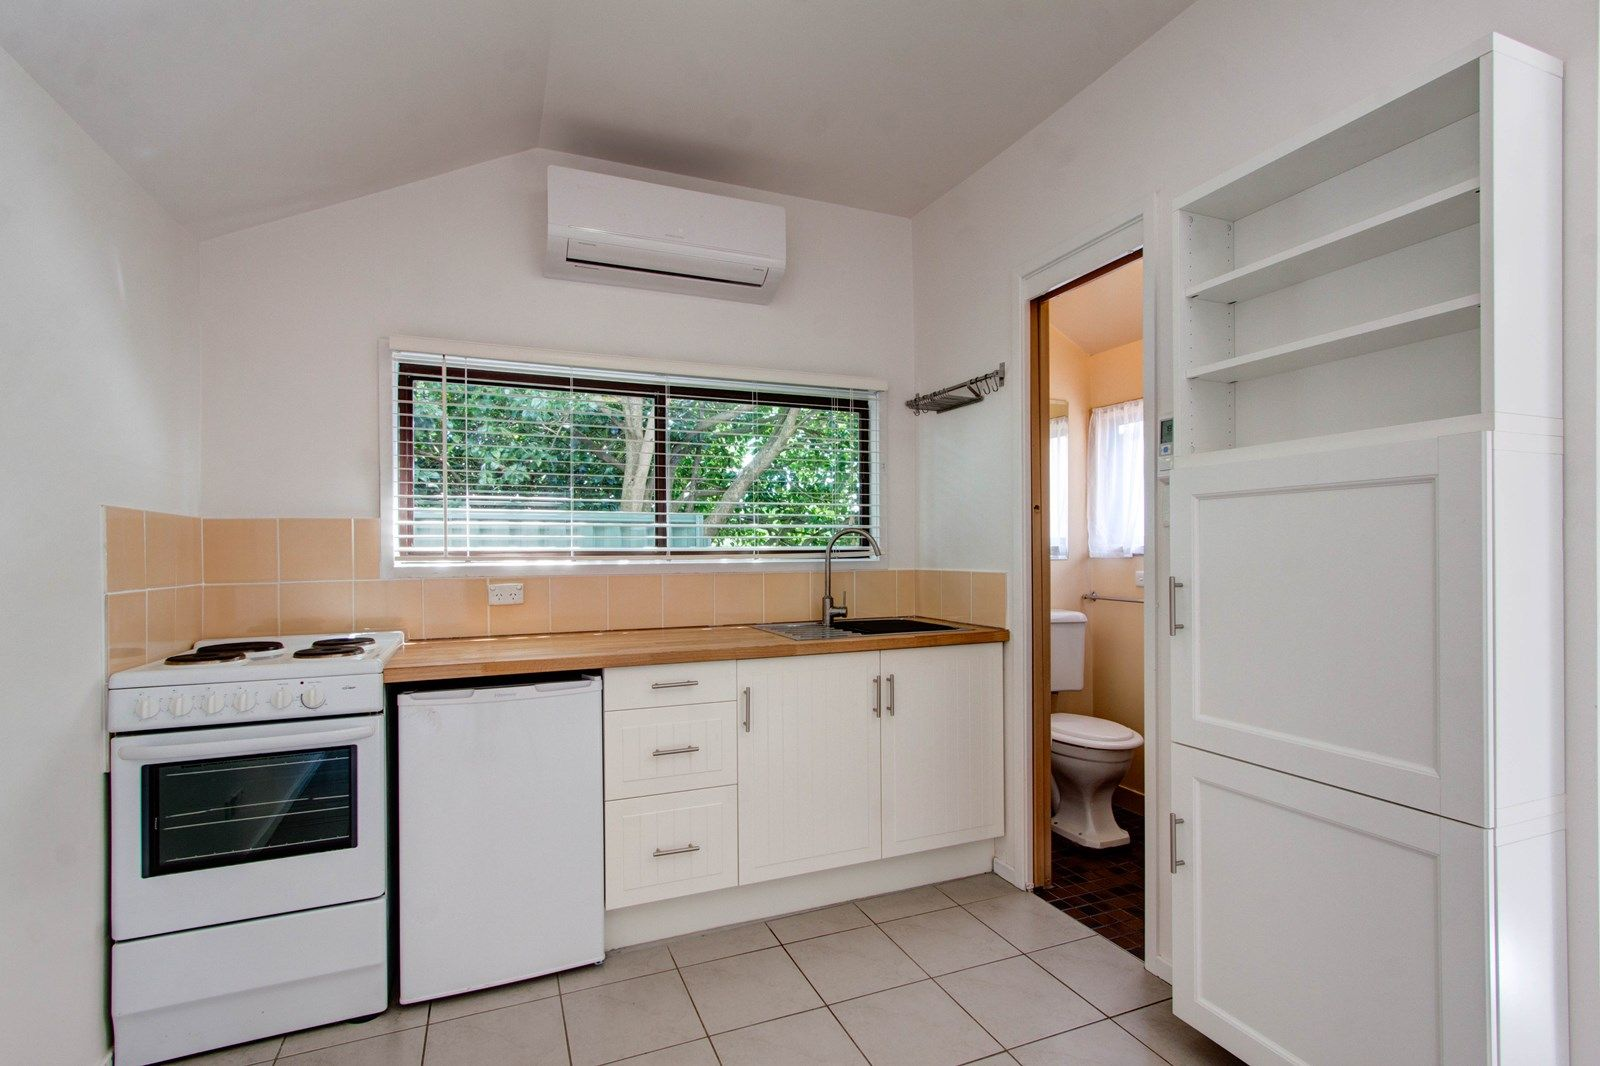 3/14 Ethel Street, Hornsby NSW 2077, Image 2